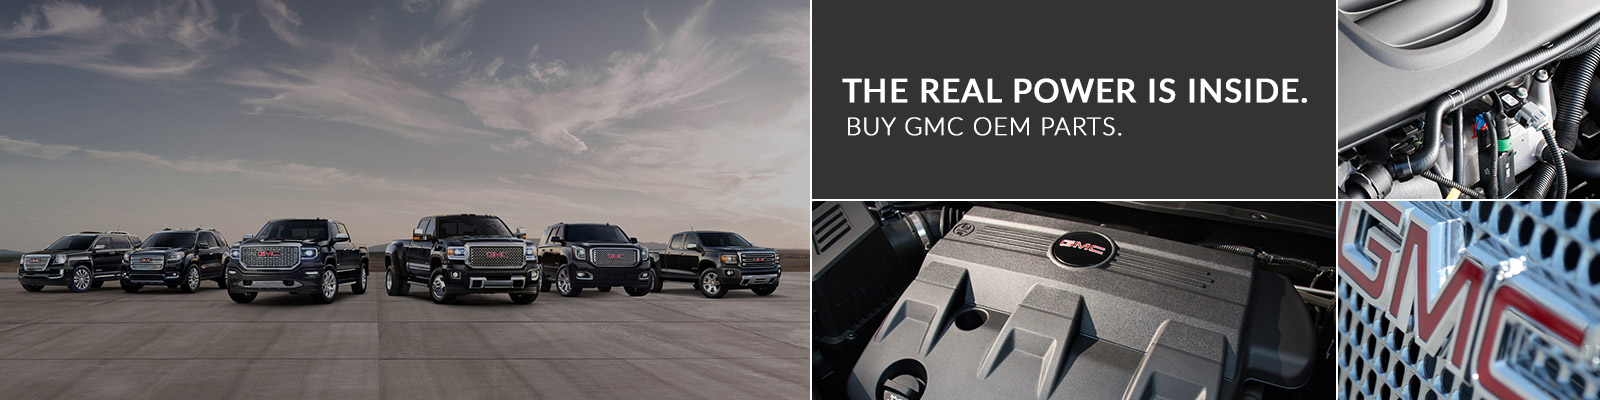 GMC genuine parts